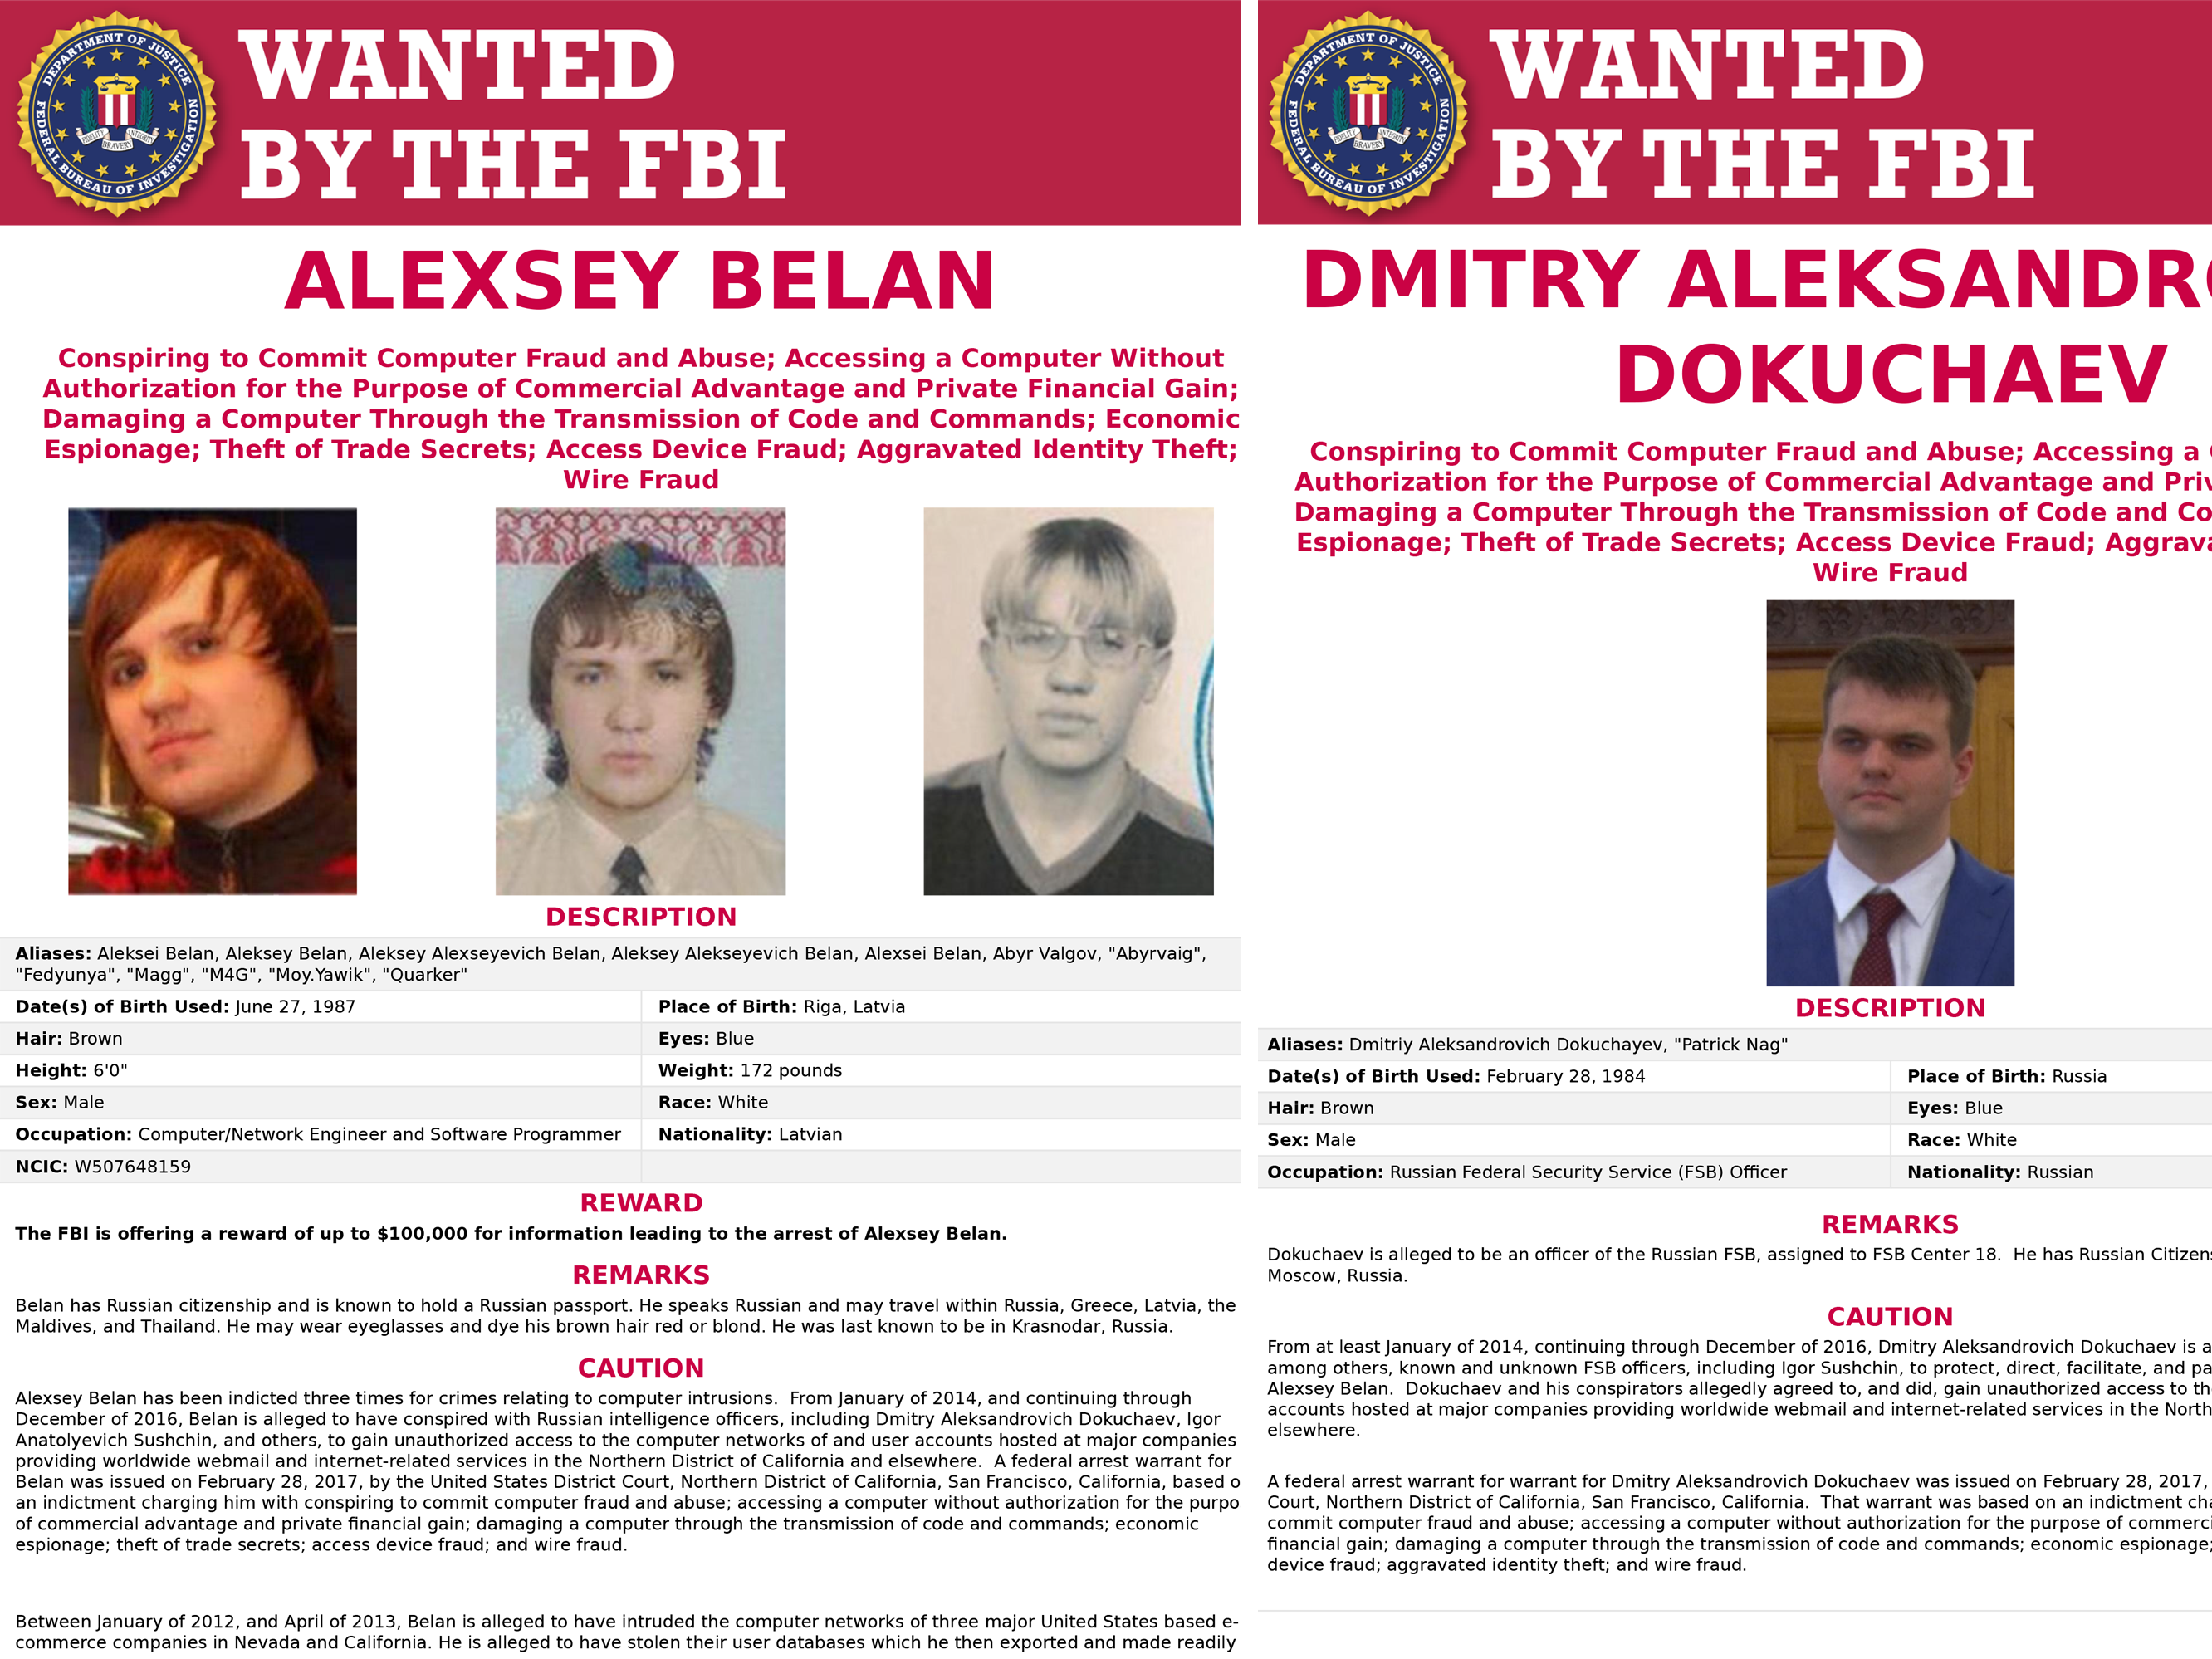 Both Alexsey Belan (left) and Dmitry Dokuchaev (right) were included in the series of 'wanted' posters for Russians accused of cybercrimes Wednesday. (Courtesy of FBI)